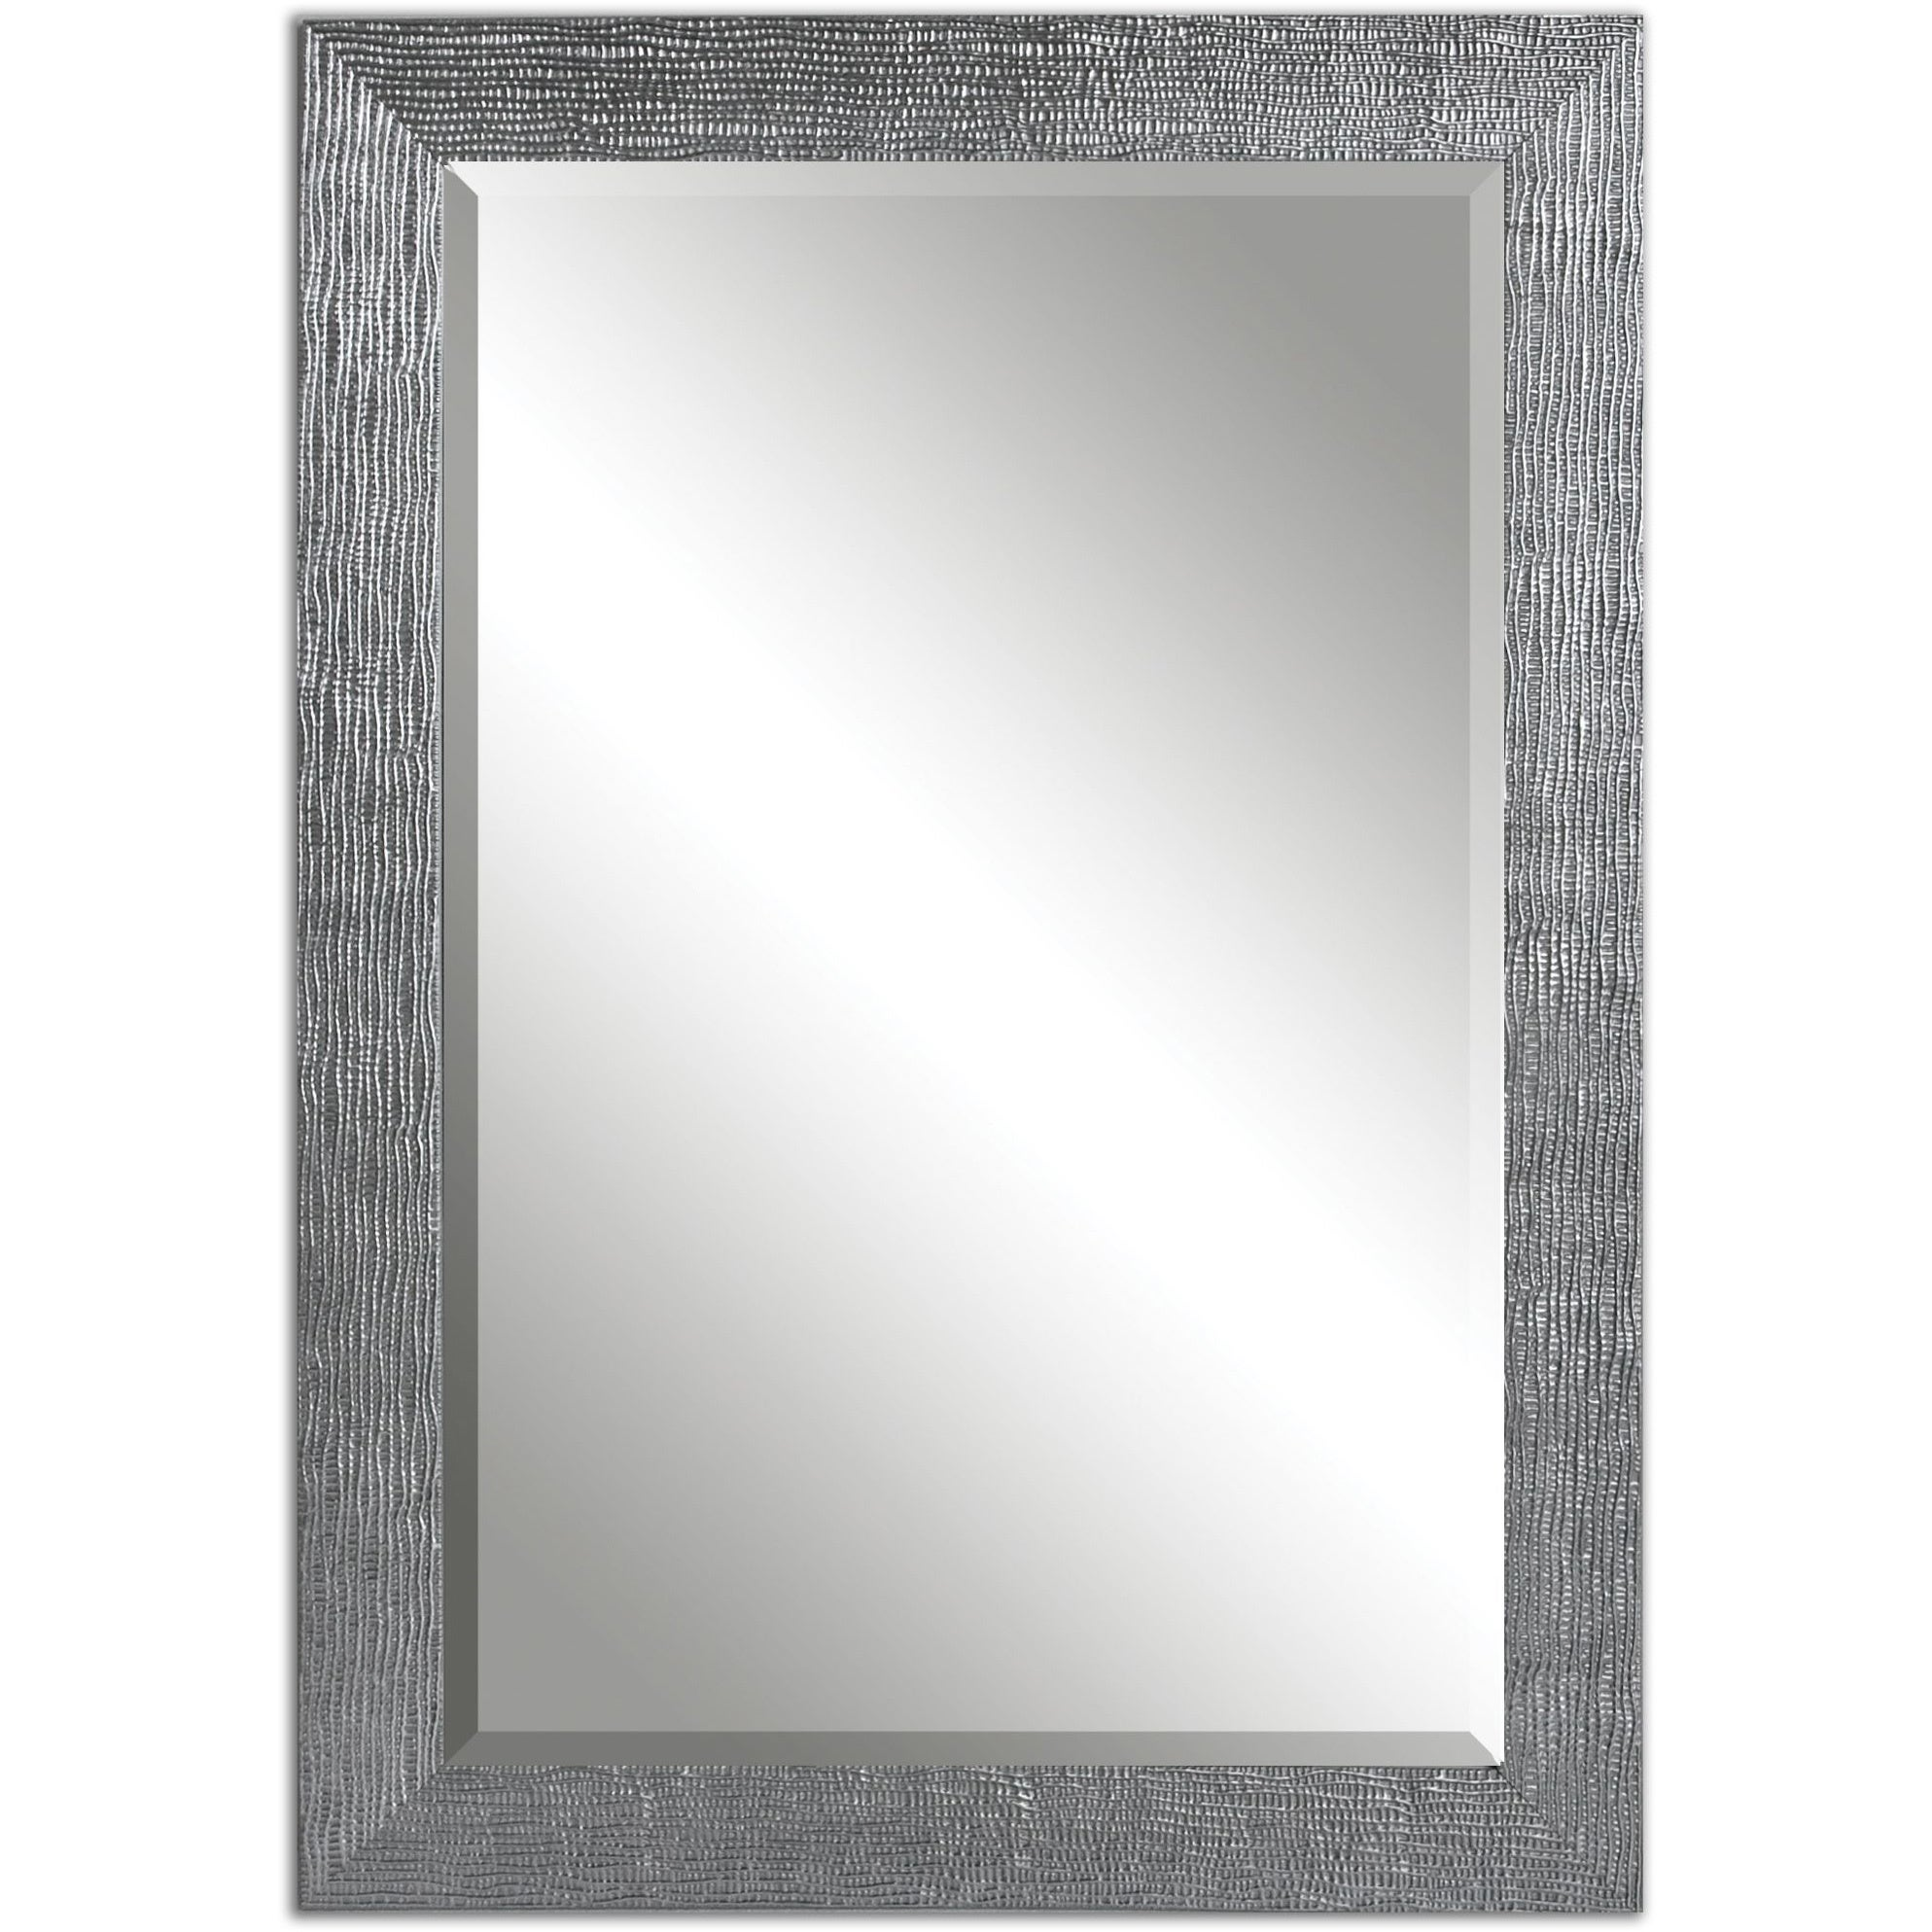 Shop Carbon Loft Gibbon Silver Bevelled Mirror - Free Shipping Today ...